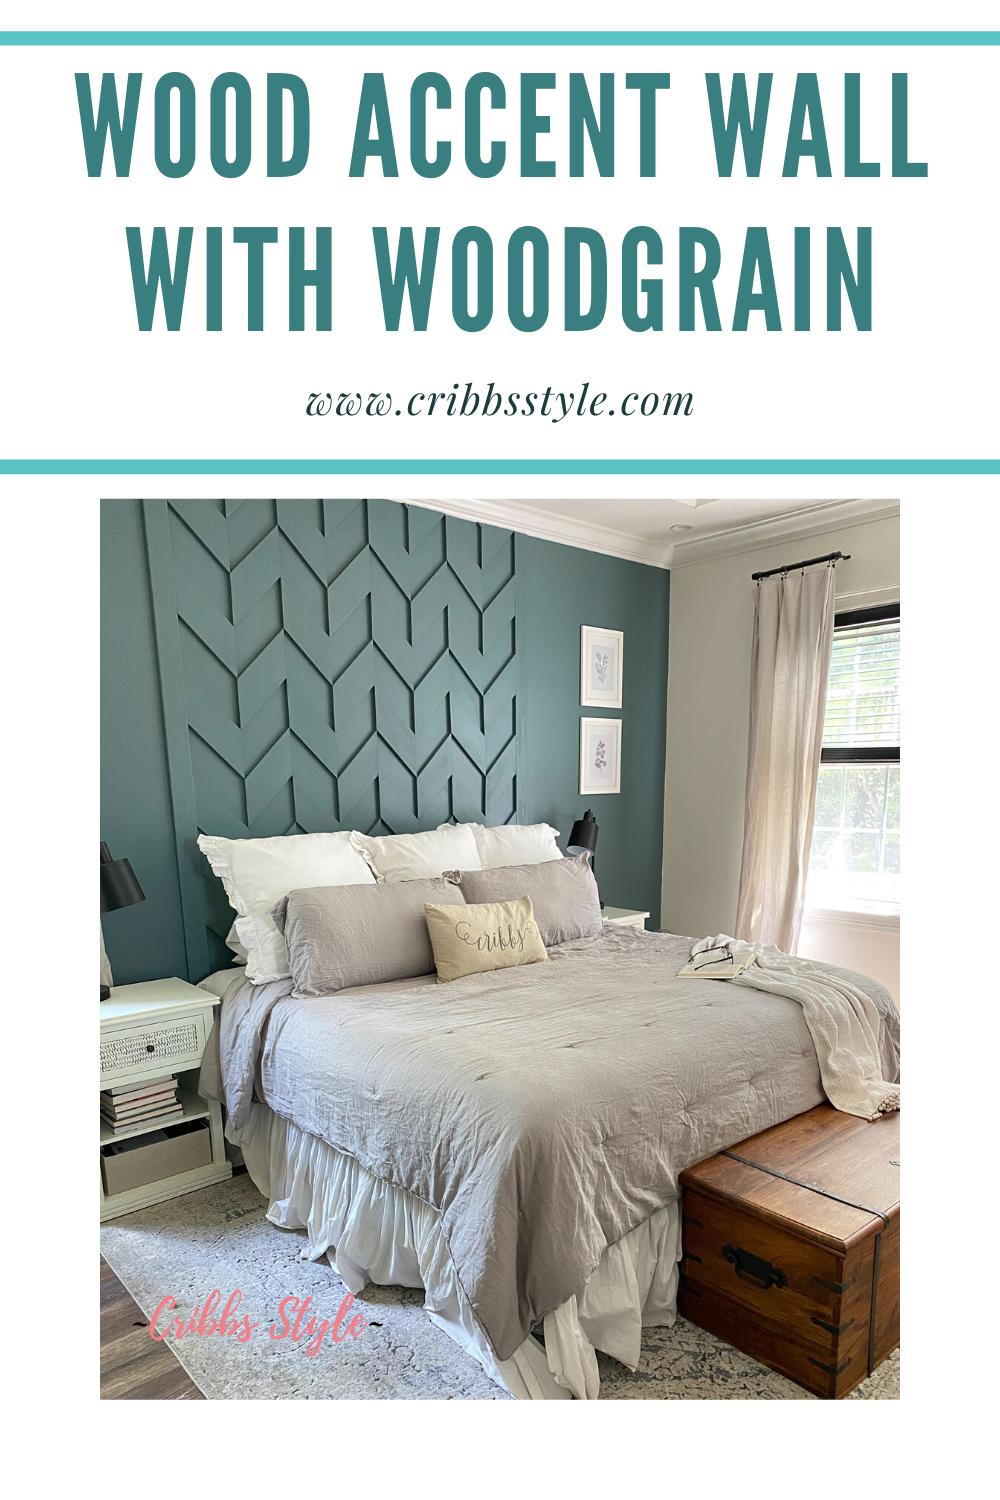 Creating Another Amazing Wood Accent Wall That Doubles As A Headboard Super Easy And Super Stylish Cribbsstyle Woodaccentwall Wood